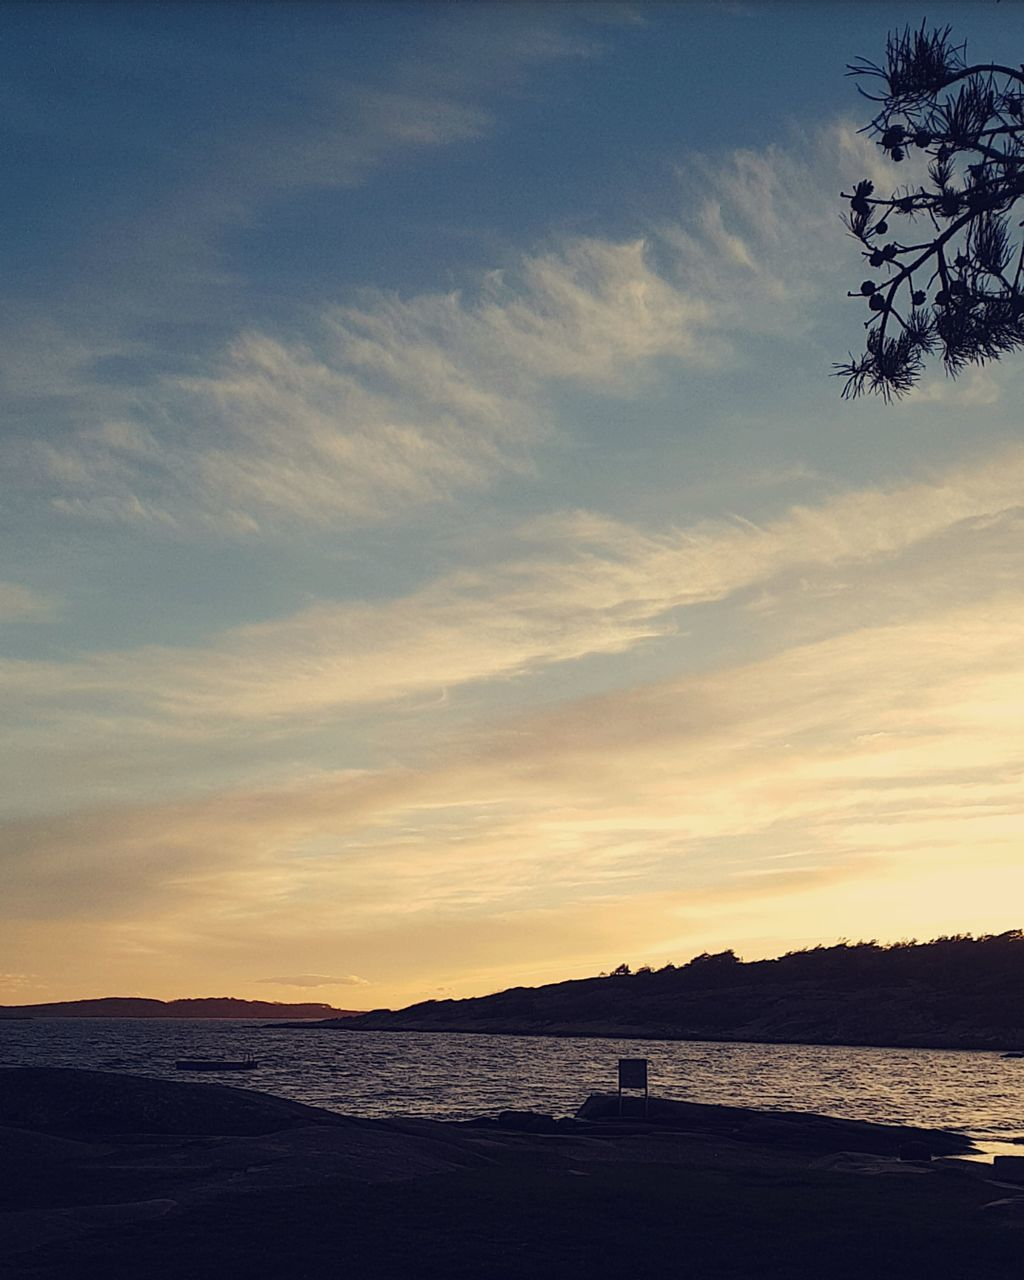 sunset, sky, beauty in nature, scenics, silhouette, tranquility, nature, water, tranquil scene, sea, cloud - sky, outdoors, no people, tree, horizon over water, mountain, day